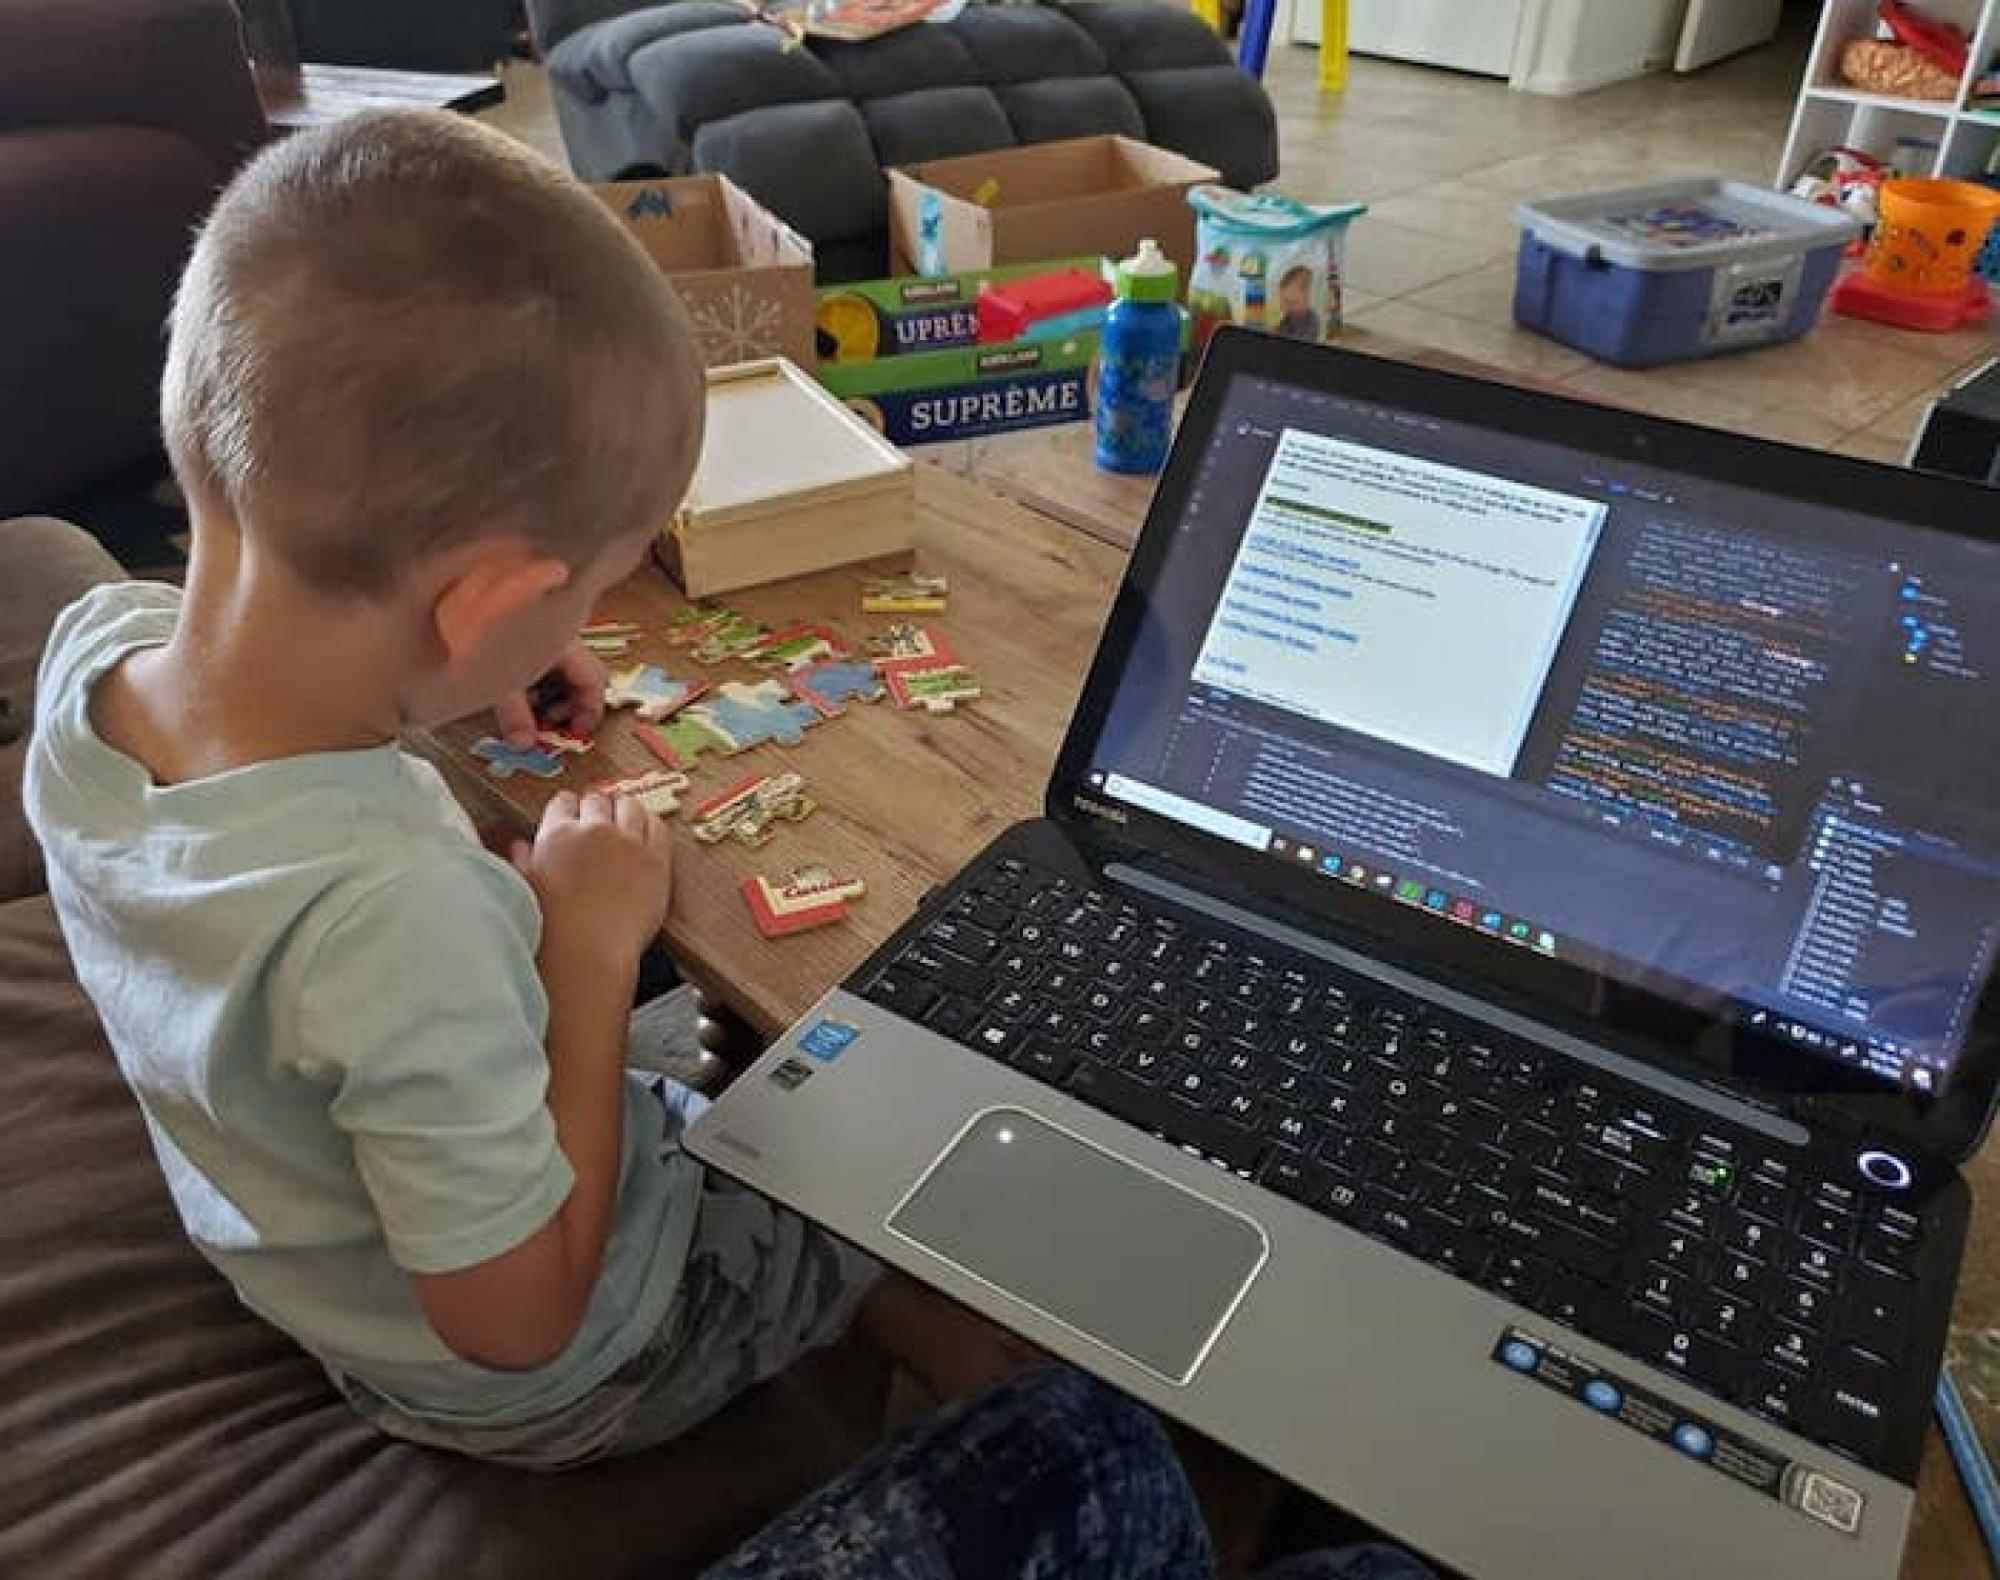 Here's a photo of my son, Joseph , working on puzzles while I'm coding a webpage . Thankfully, we had just purchased a new coffee table a week before this, which has a lift top to turn it into a desk! Overall, we're loving all the family time we're having